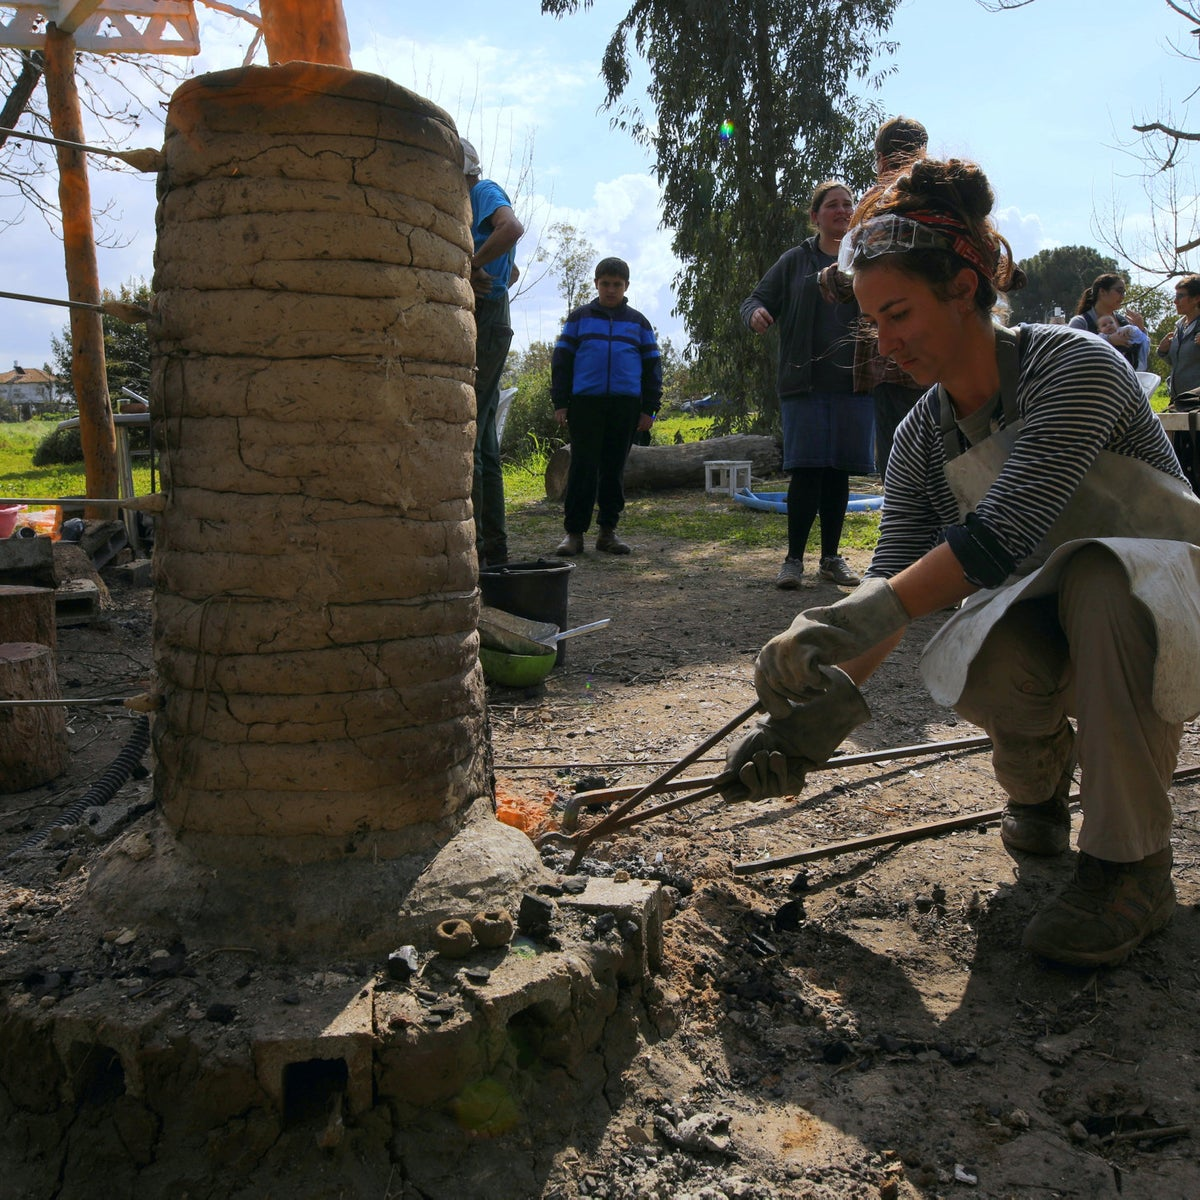 The archaeologists suspect that  iron smelting kilns were disposable